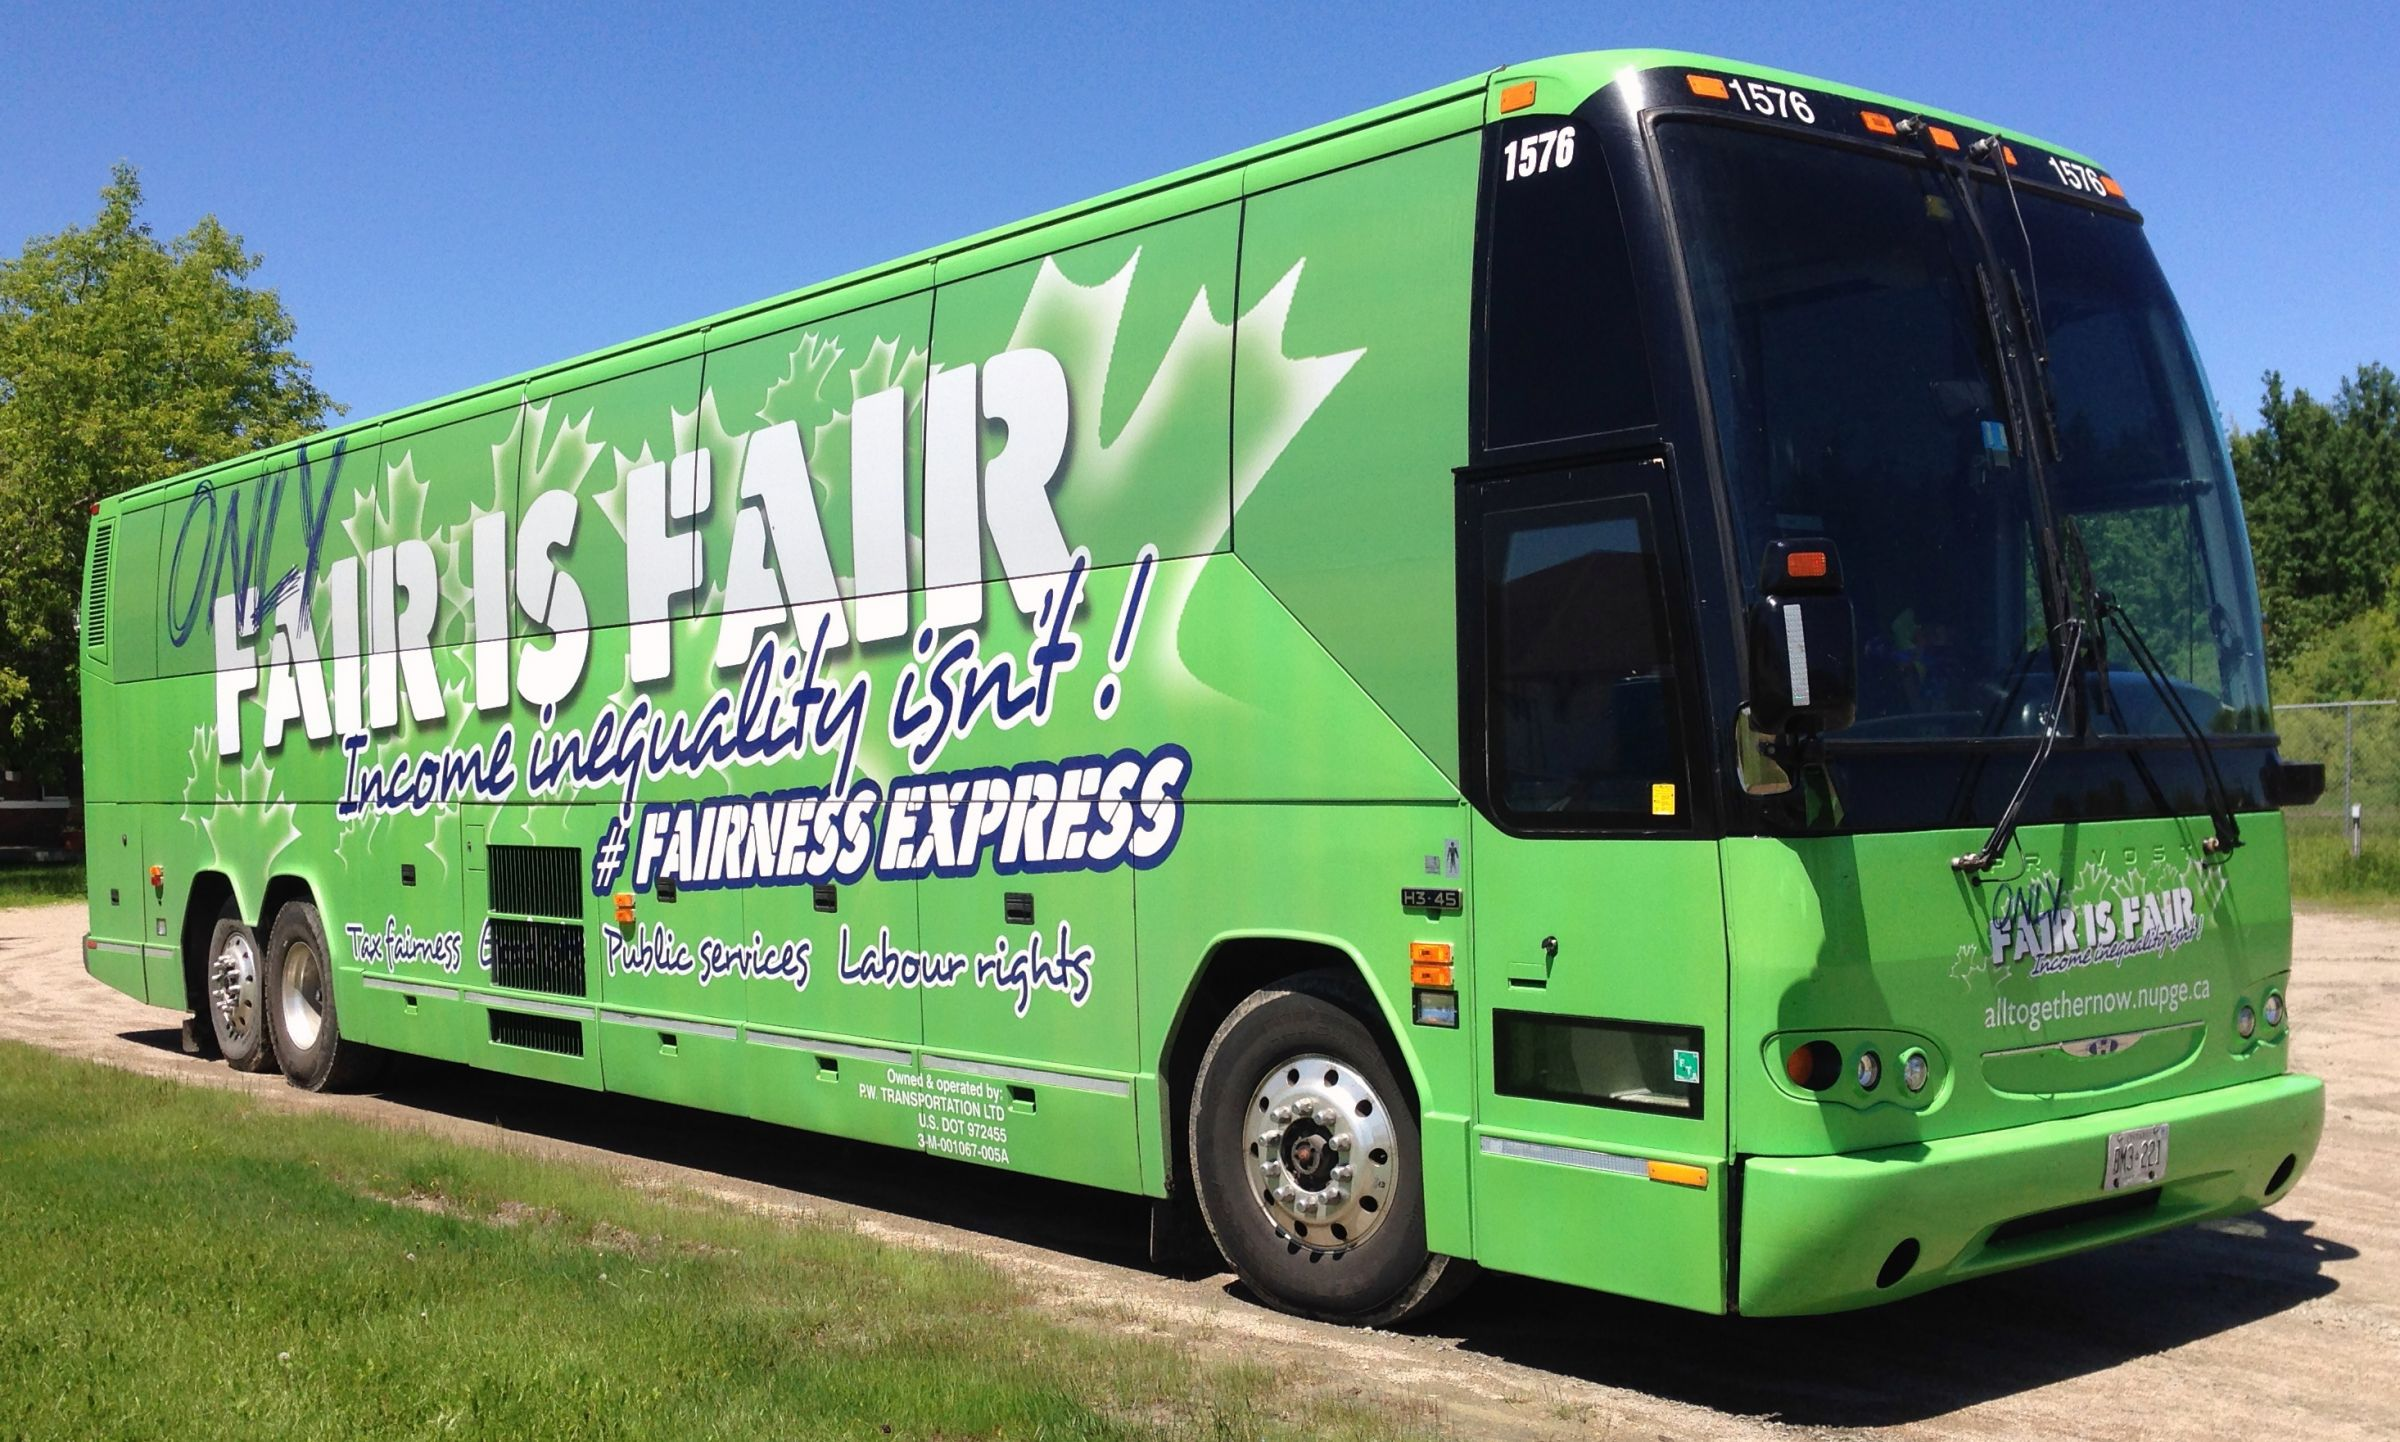 A Big Green Bus Is Coming To The Trout Festival